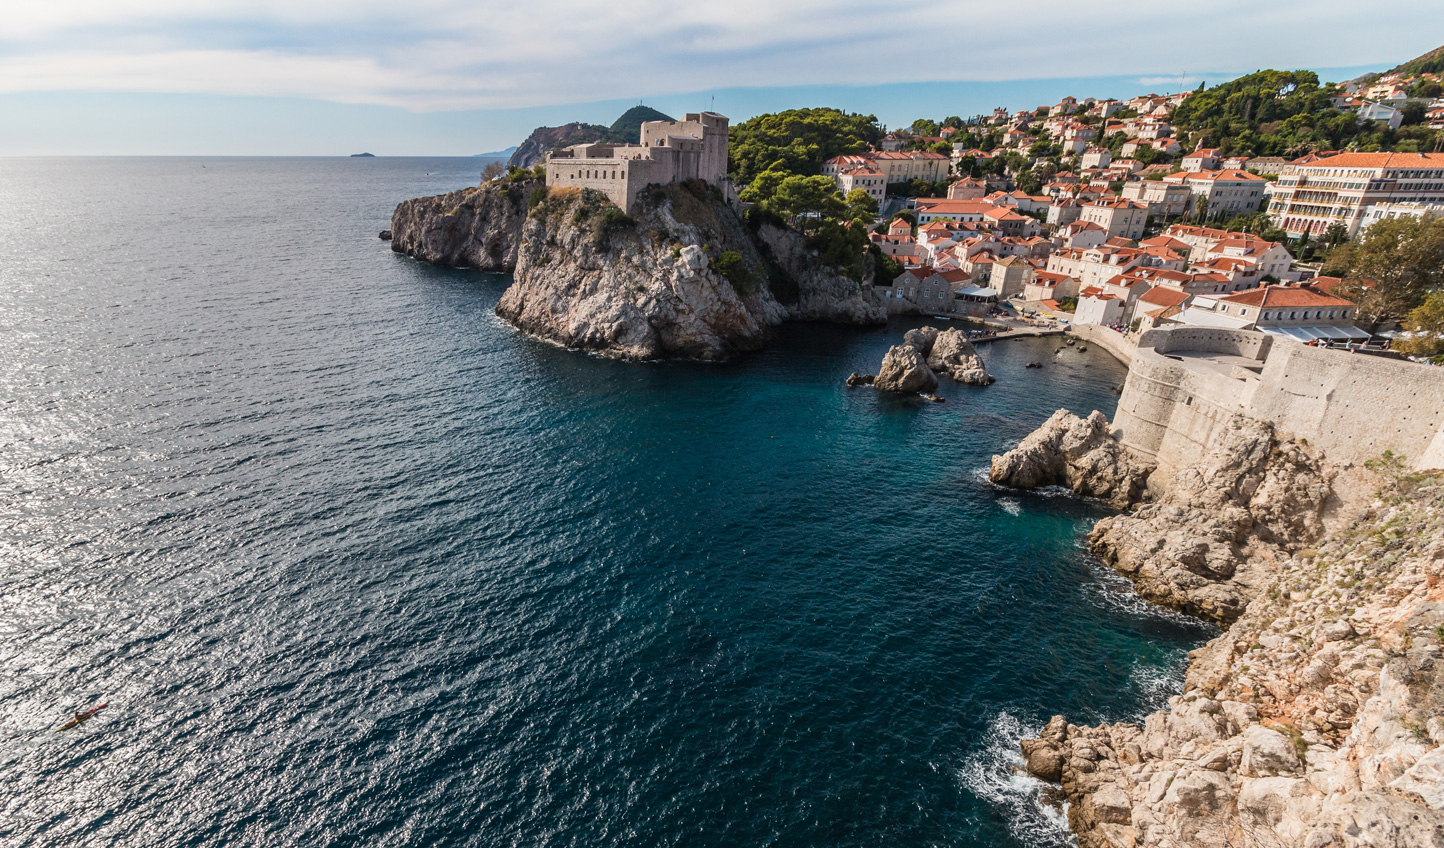 Fall in love with the Pearl of the Adriatic